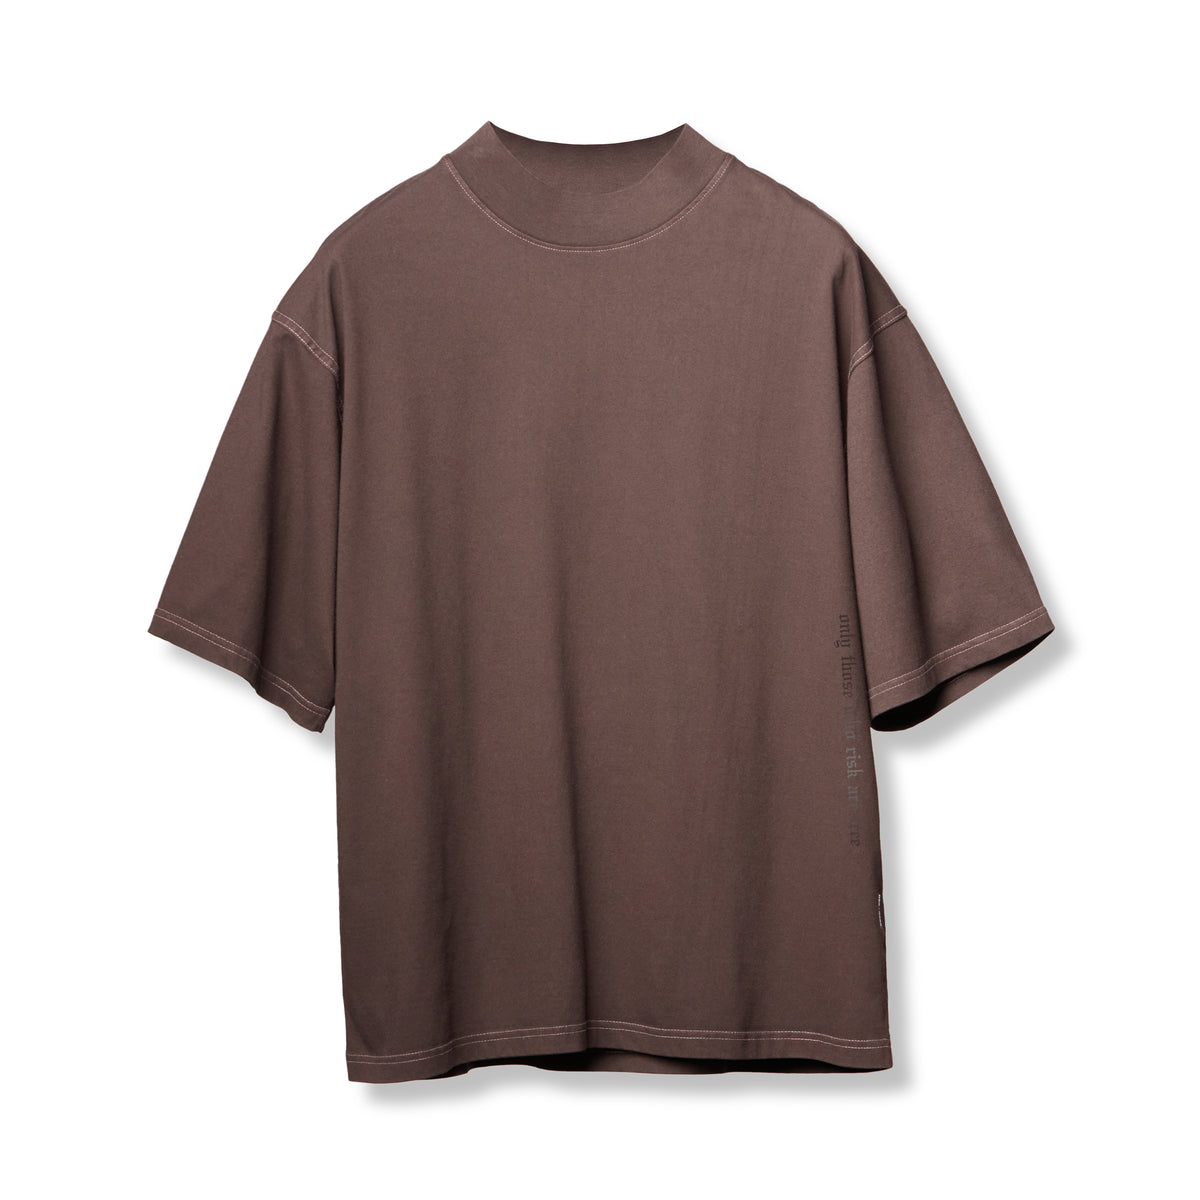 0385. CottonPlus™ Oversized Mock Neck Tee - Dark Earth